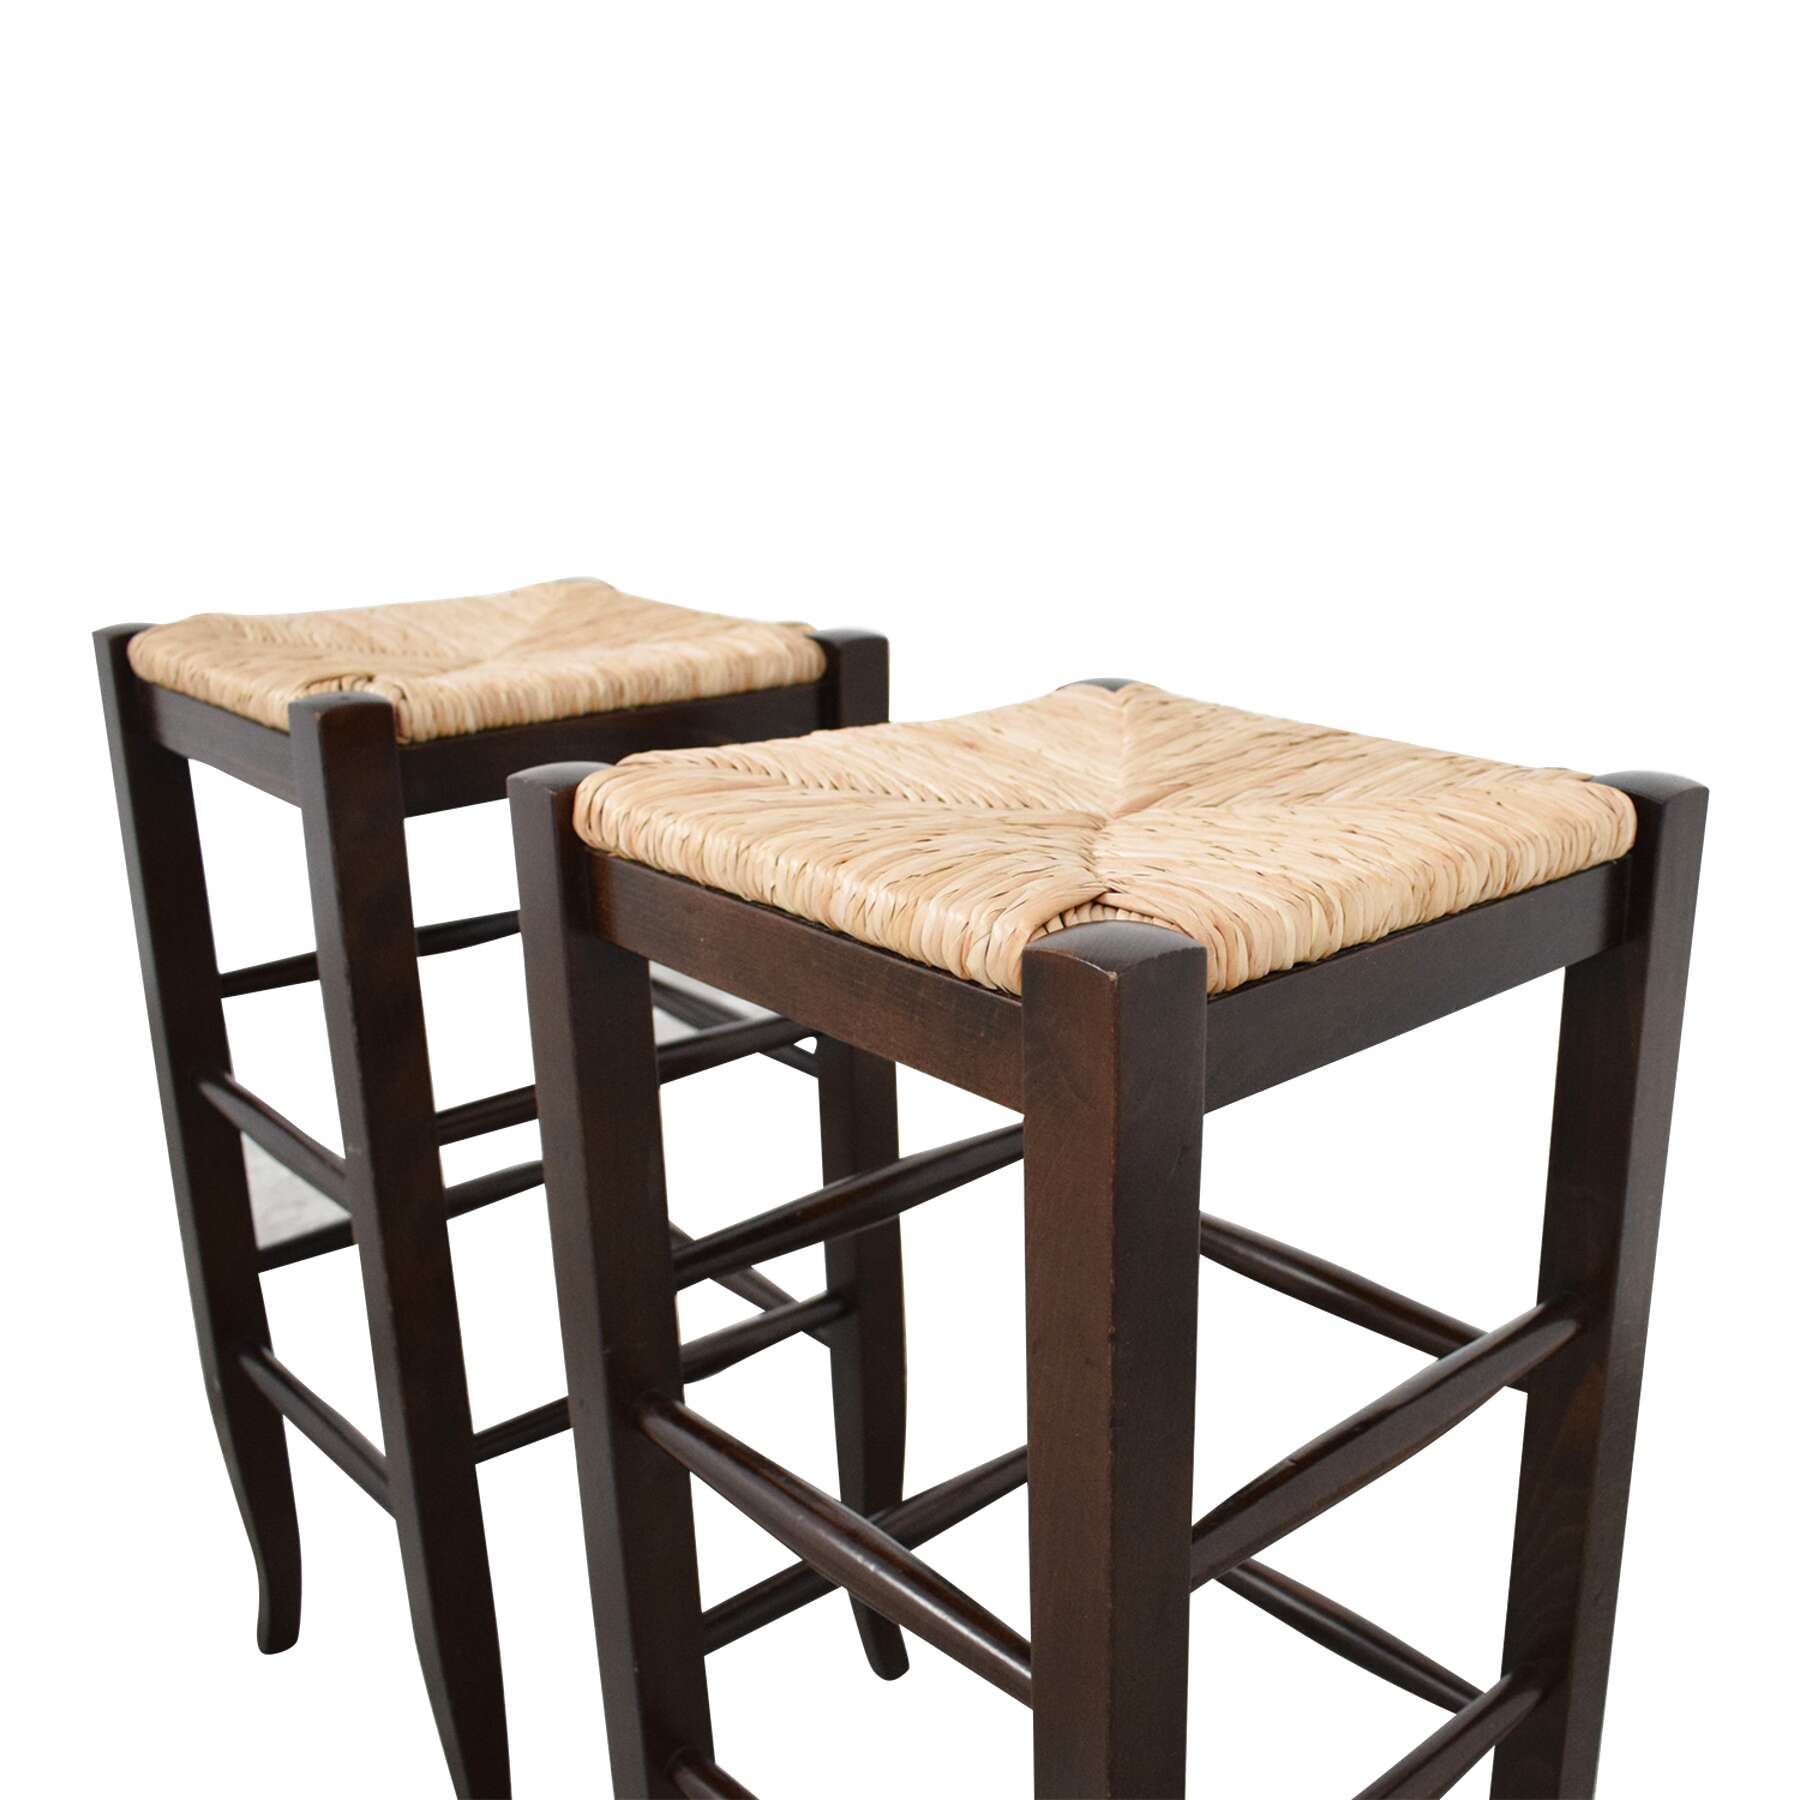 Pottery Barn Stool For Sale Only 2 Left At 70